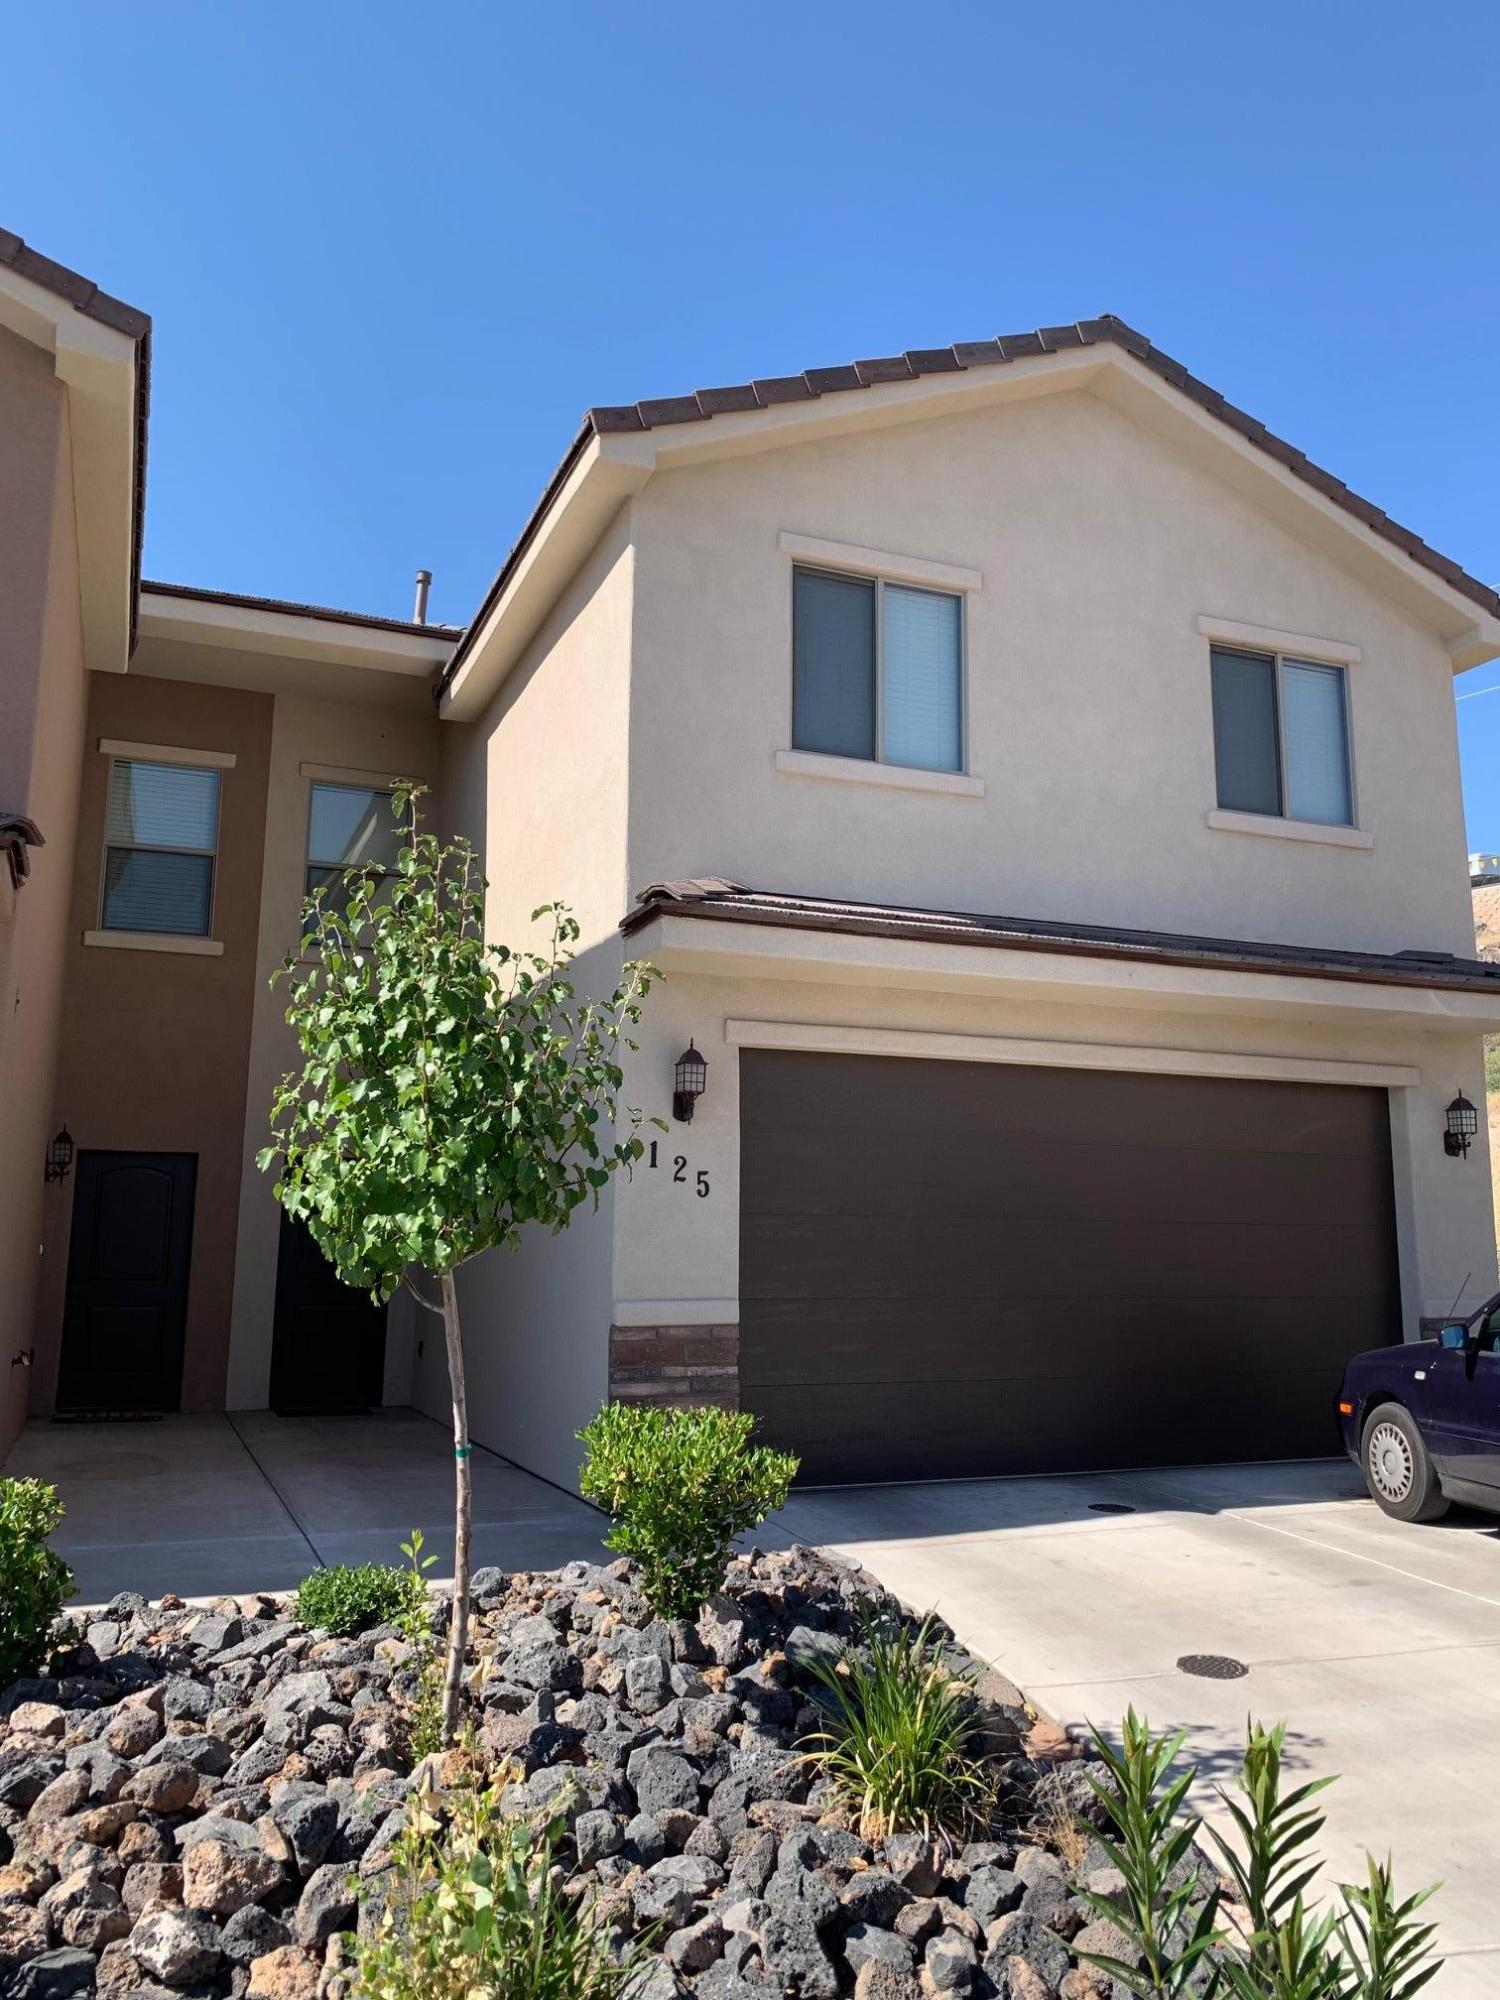 Nearly New! Great floor plan with nice finishes, granite, tile, 2 tone paint and nice enclosed back yard patio. This town home has a 2 car garage, low HOA, and lots of square footage for the price. Awesome first time home buyer, investor, family or snow bird.